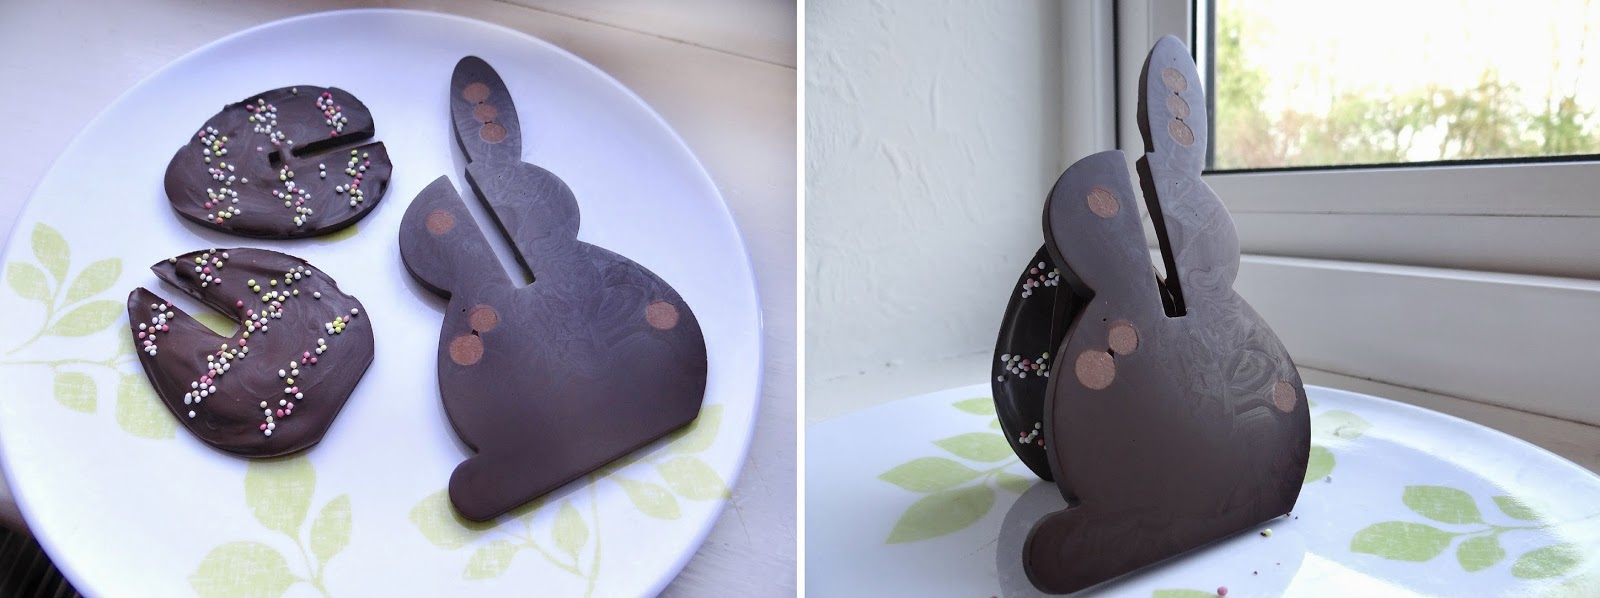 Lekue Easter chocolate mould, 3D chocolate egg mould, 3D chocolate rabbit mould